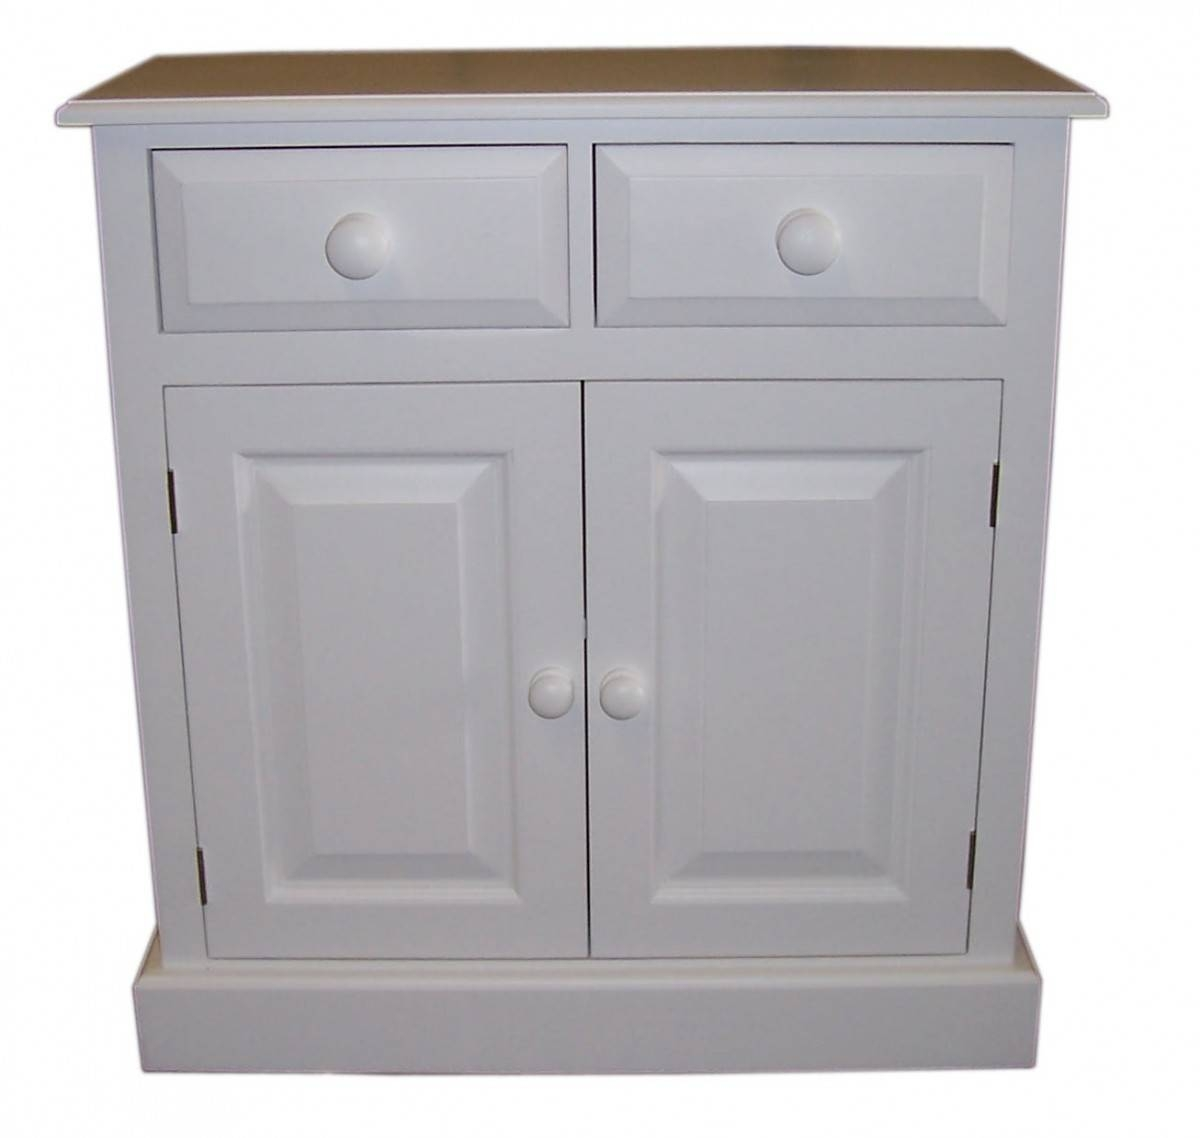 """Doors And Drawers Shallow Depth Sideboard - Available In 2'6"""", 3 intended for 14 Inch Deep Sideboards (Image 11 of 15)"""